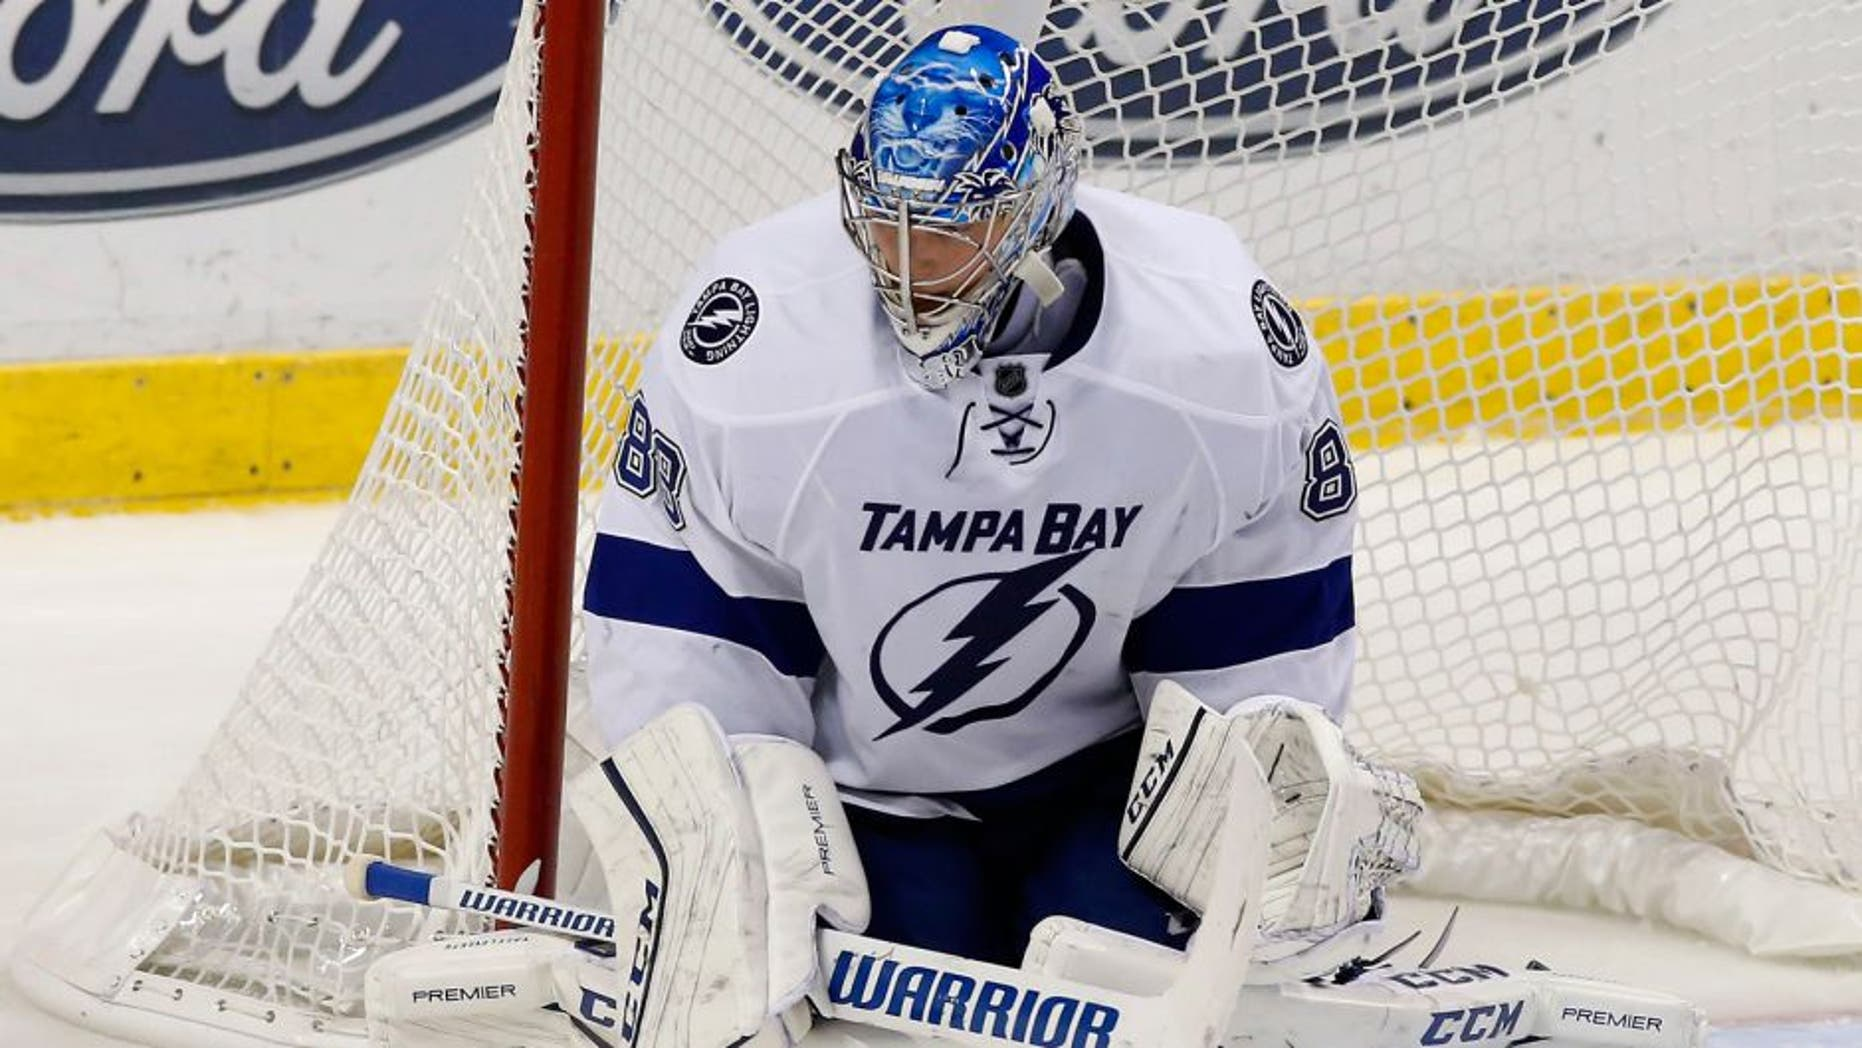 Nov 16, 2015; Sunrise, FL, USA; Tampa Bay Lightning goalie Andrei Vasilevskiy (88) makes a save in the third period of a game against the Florida Panthers at BB&T Center. The Panthers won 1-0. Mandatory Credit: Robert Mayer-USA TODAY Sports